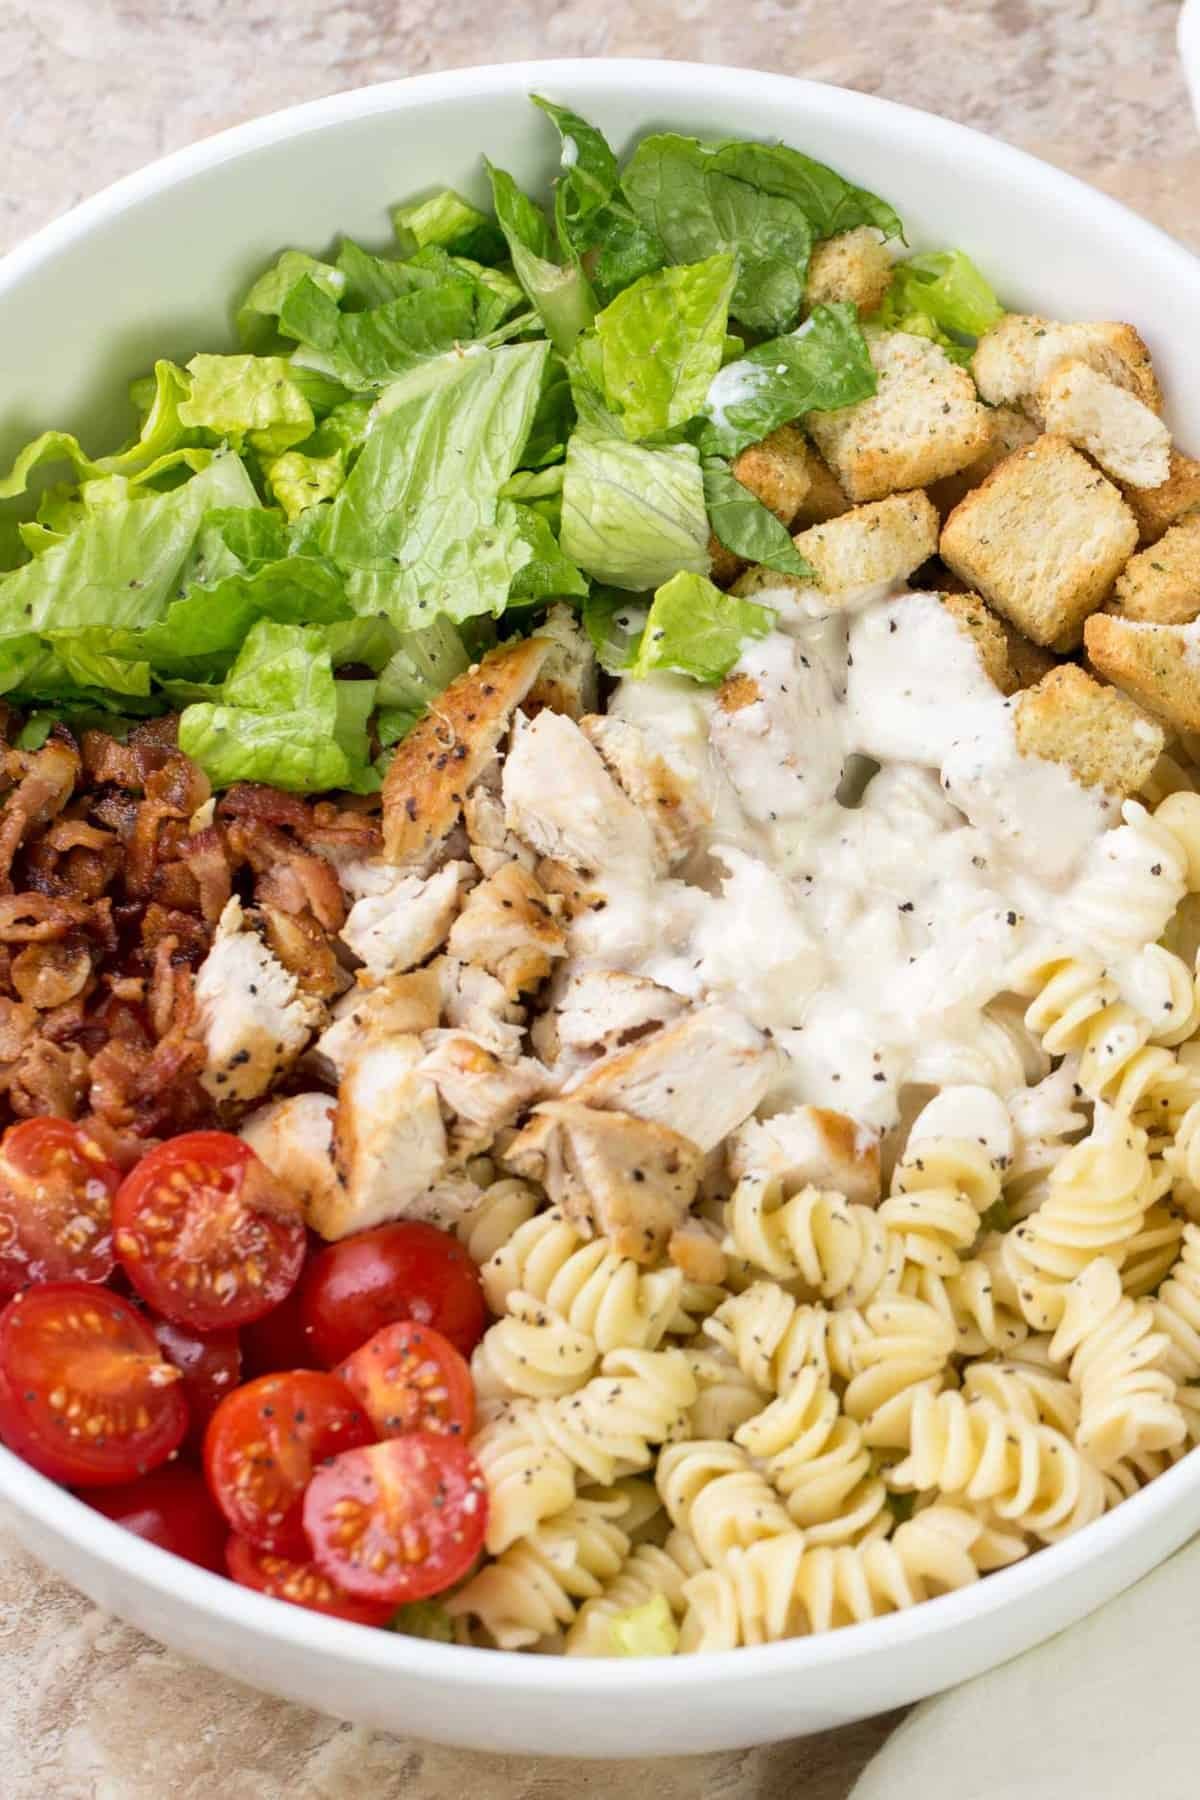 Pasta salad with romaine, bacon, chicken and croutons with a Caesar salad dressing in a white salad bowl.